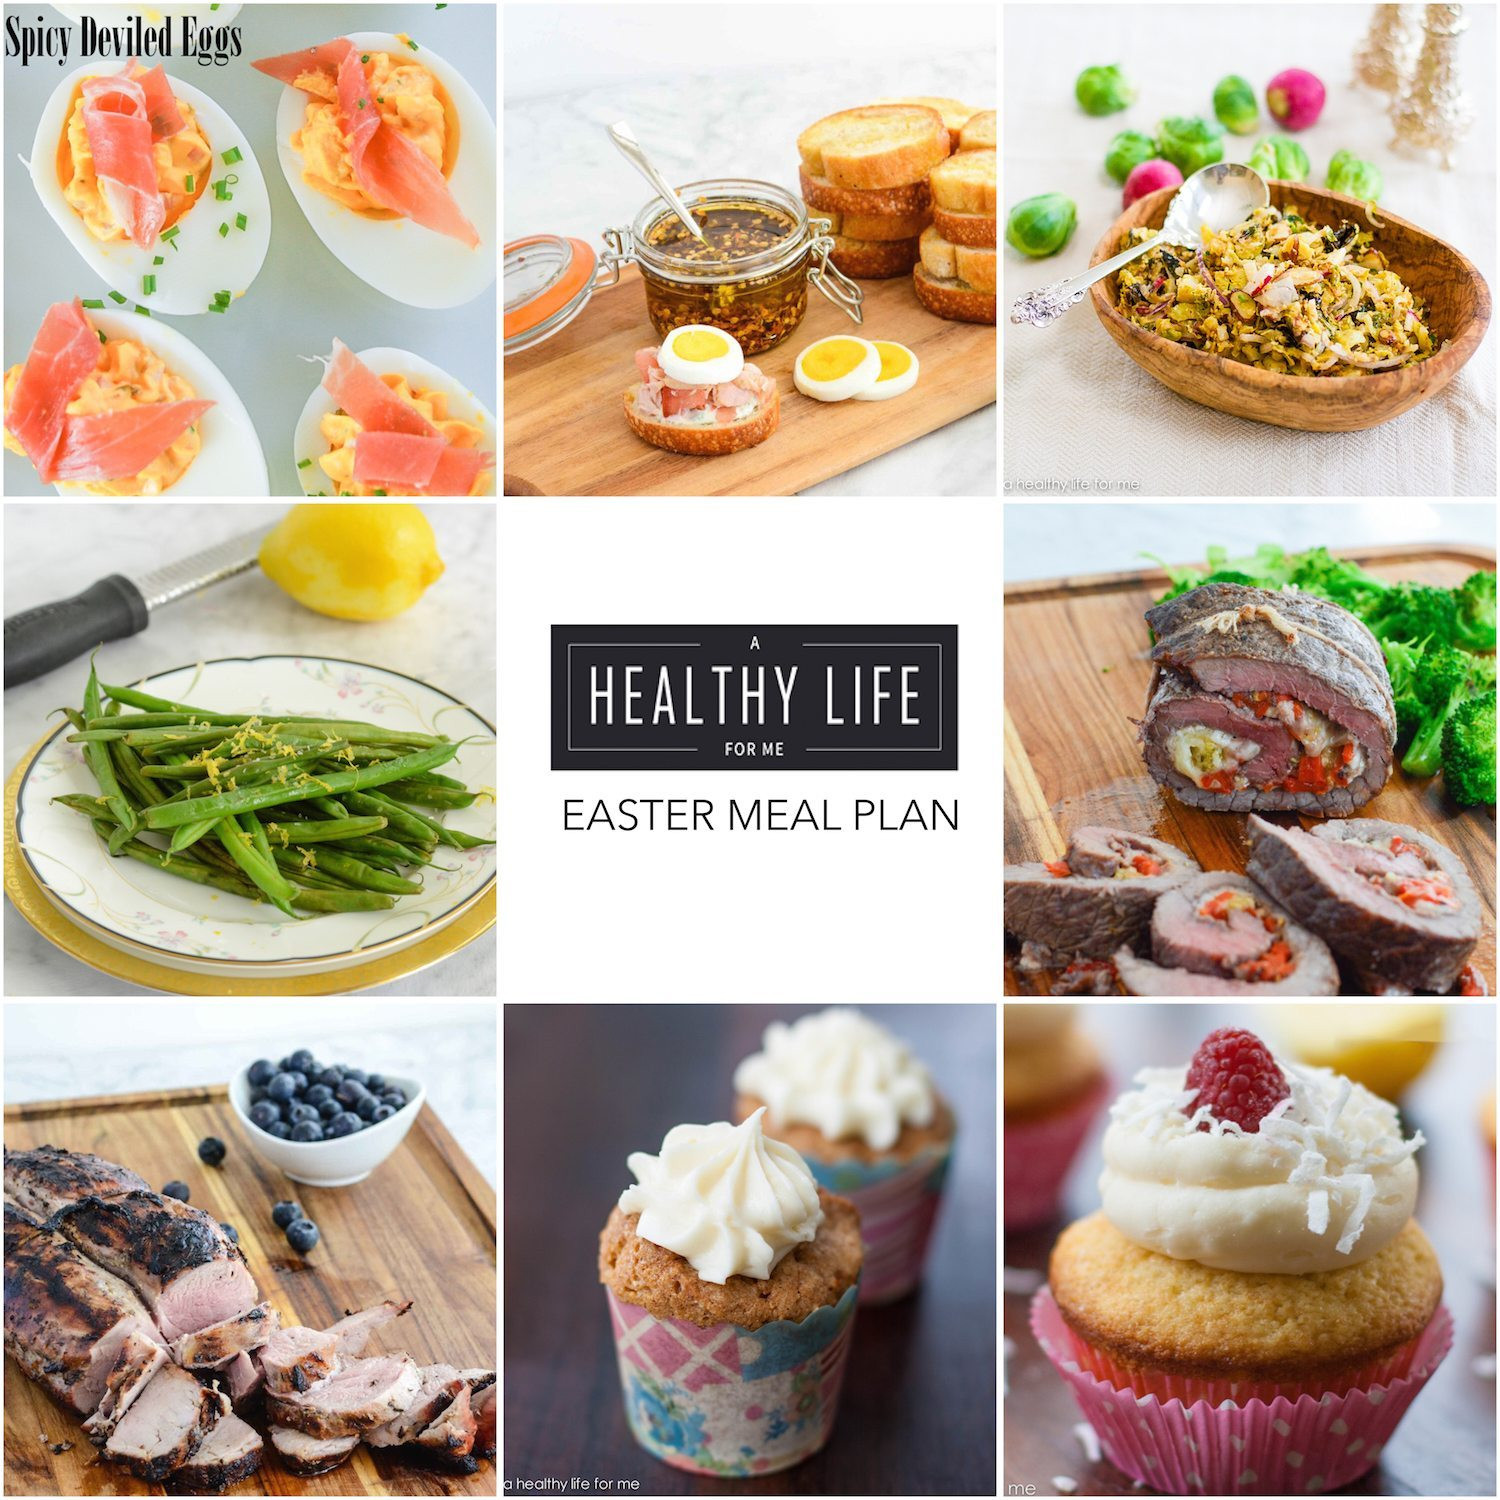 Easter Dinner Menu Ideas  Elegant Easter Menu A Healthy Life For Me